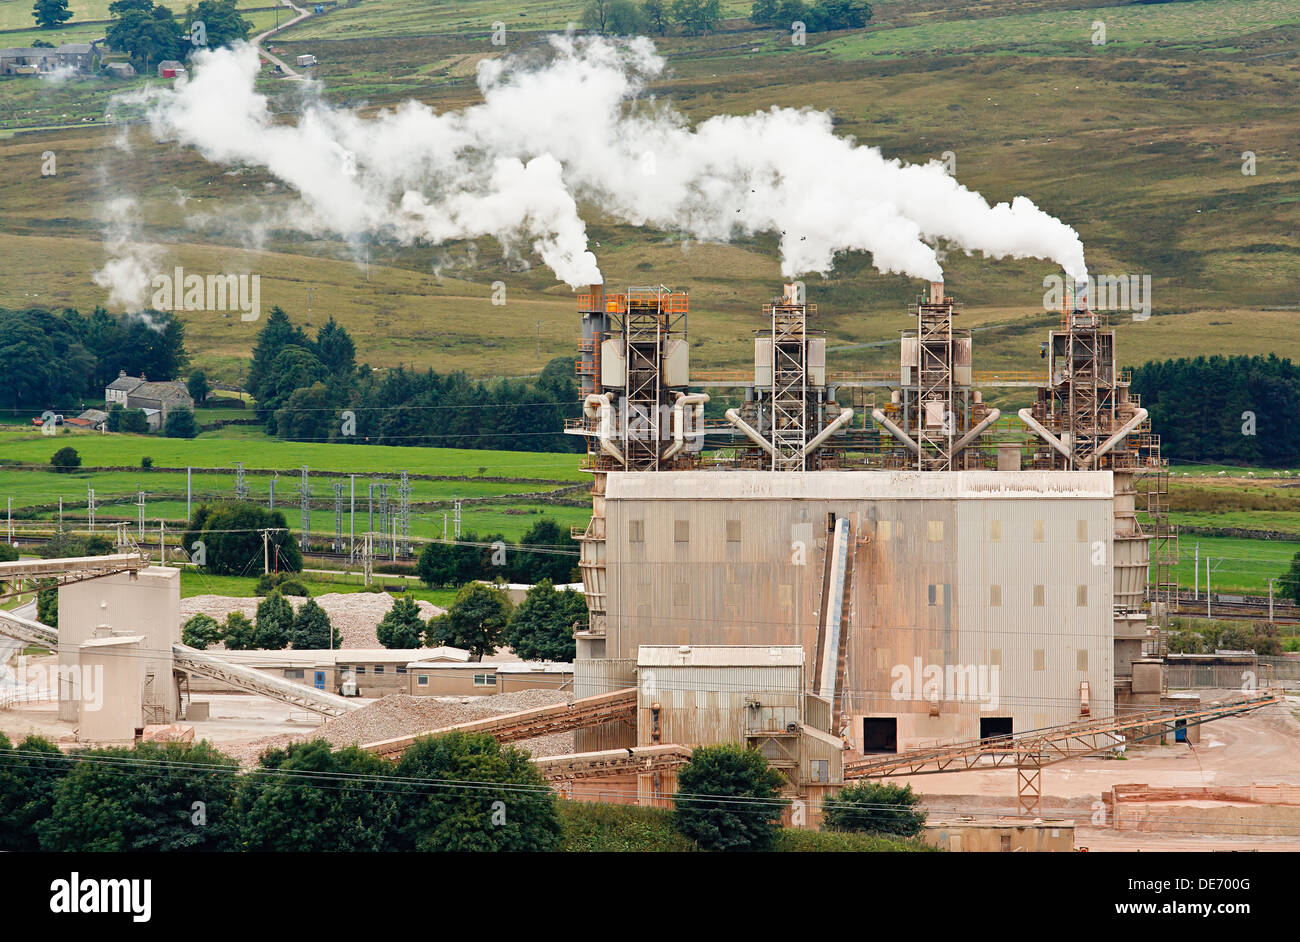 Four industrial chimneys belching smoke into the atmosphere - Stock Image